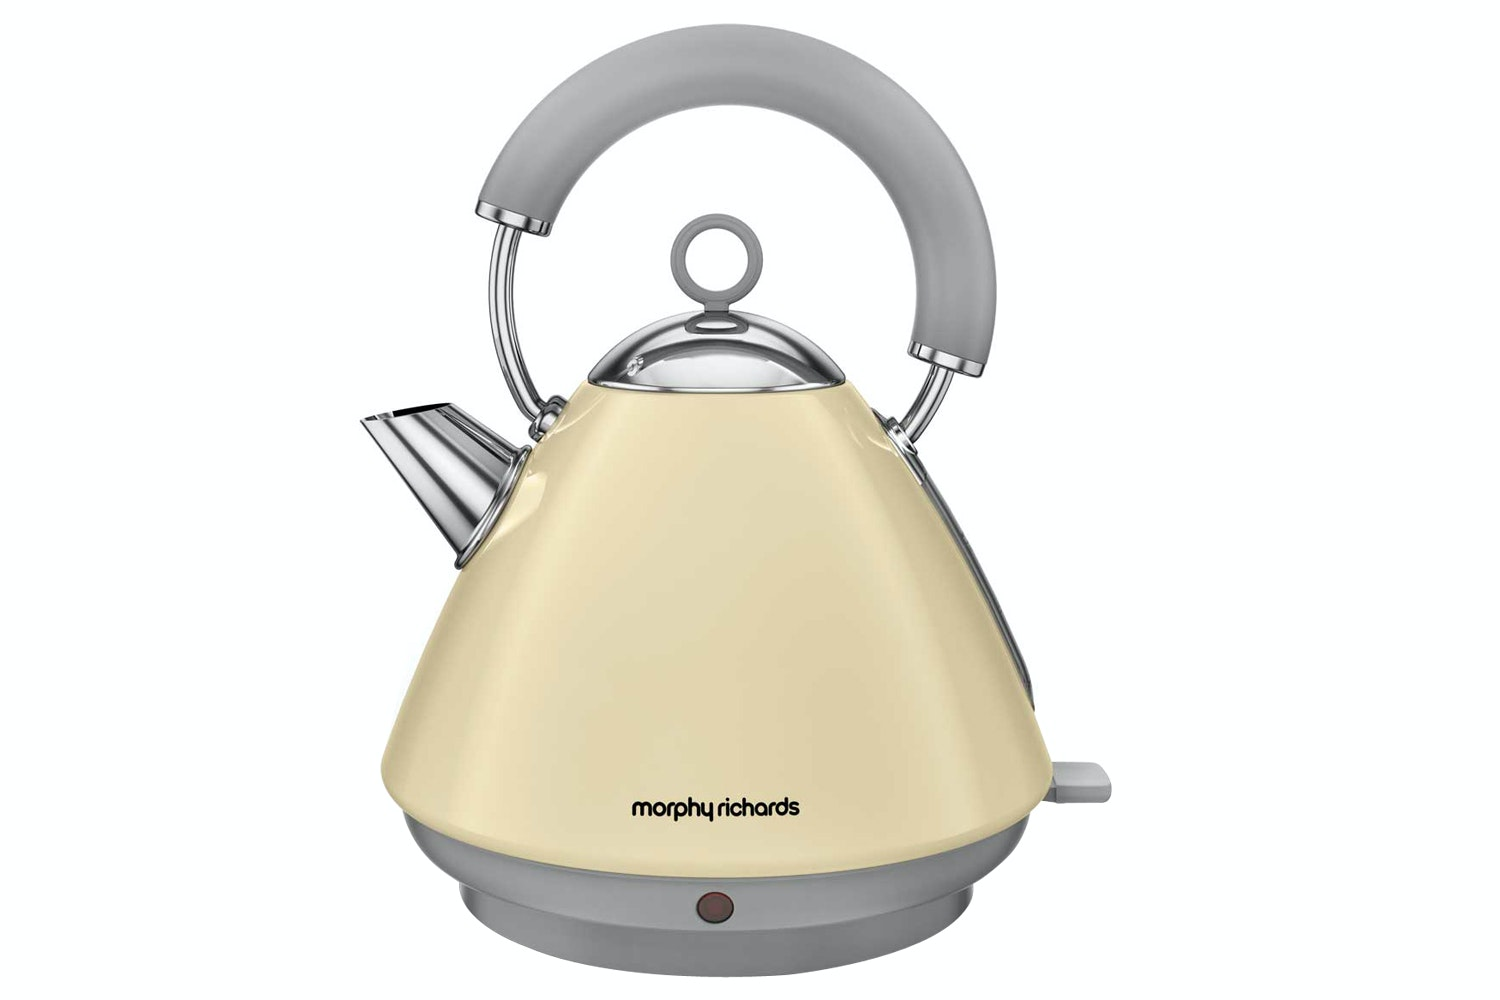 Morphy Richards Cream Accents Pyramid Kettle | 102032